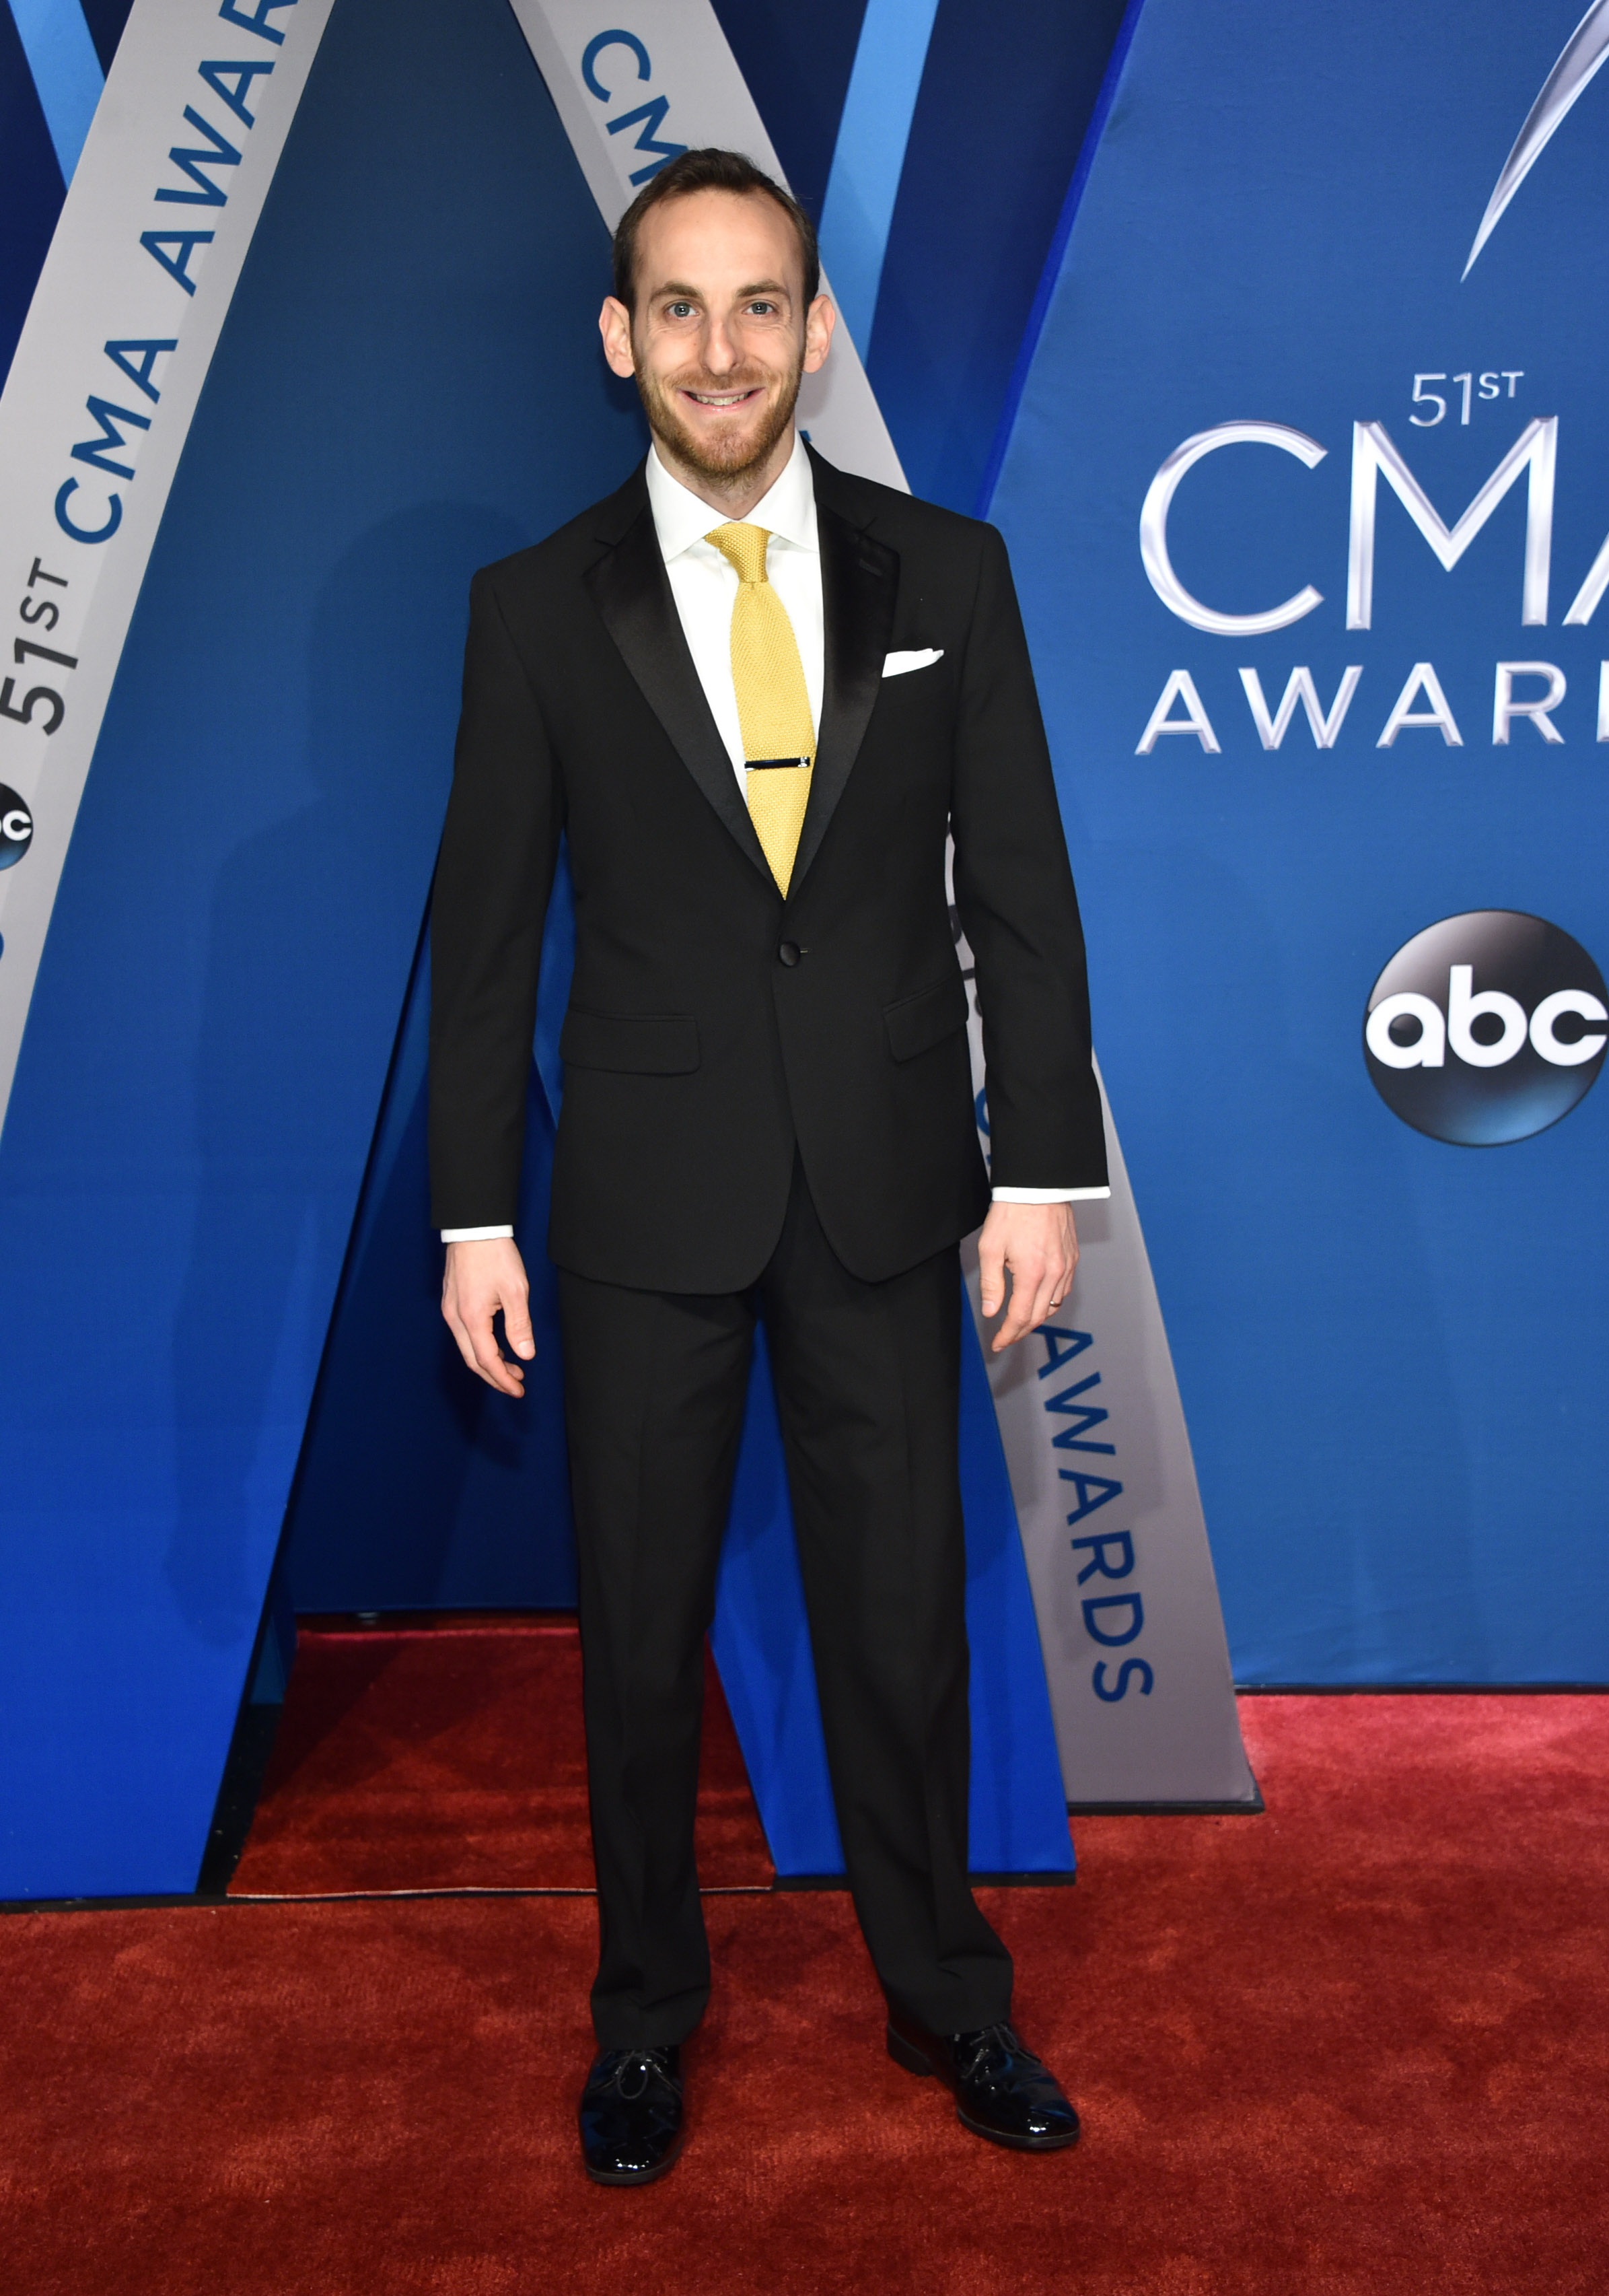 Sam red carpet CMA Awards 2017